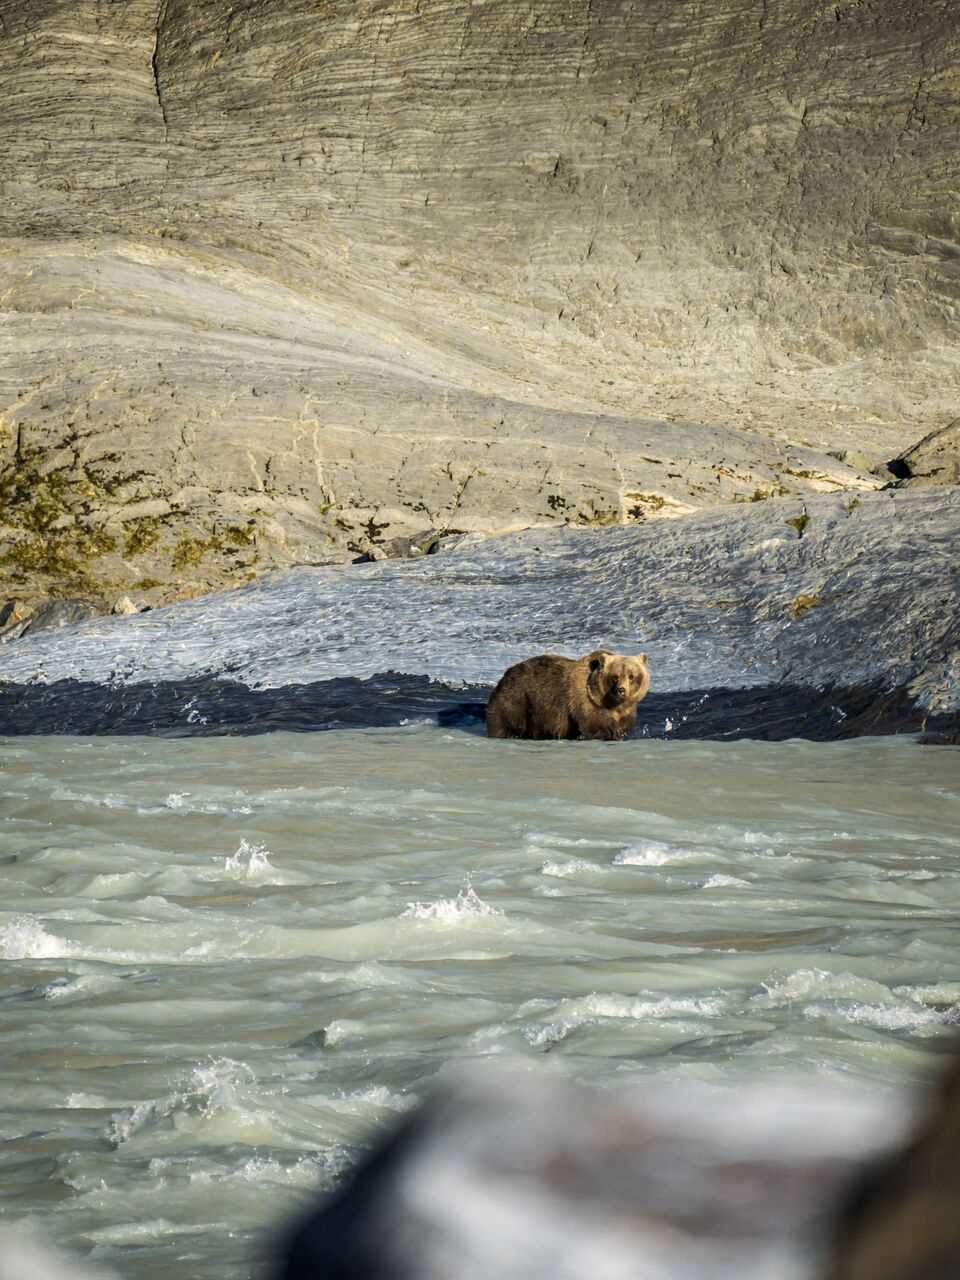 grizzly bear in the water near river's edge